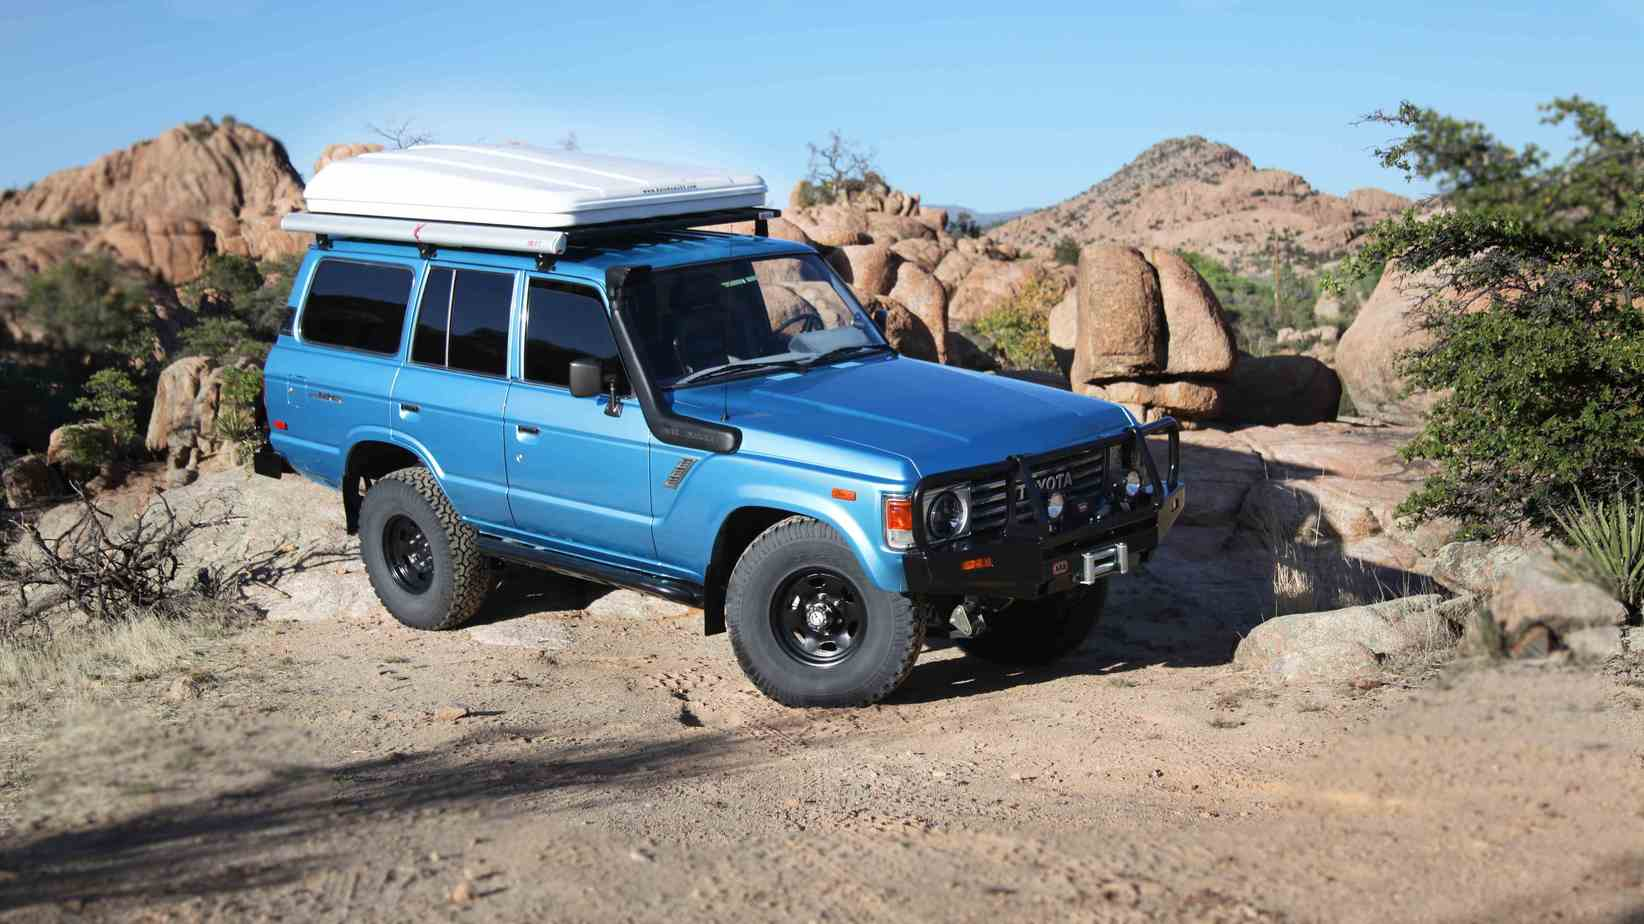 Featured Vehicle: Toyota 60 Series with 4.2-Liter Turbo Diesel